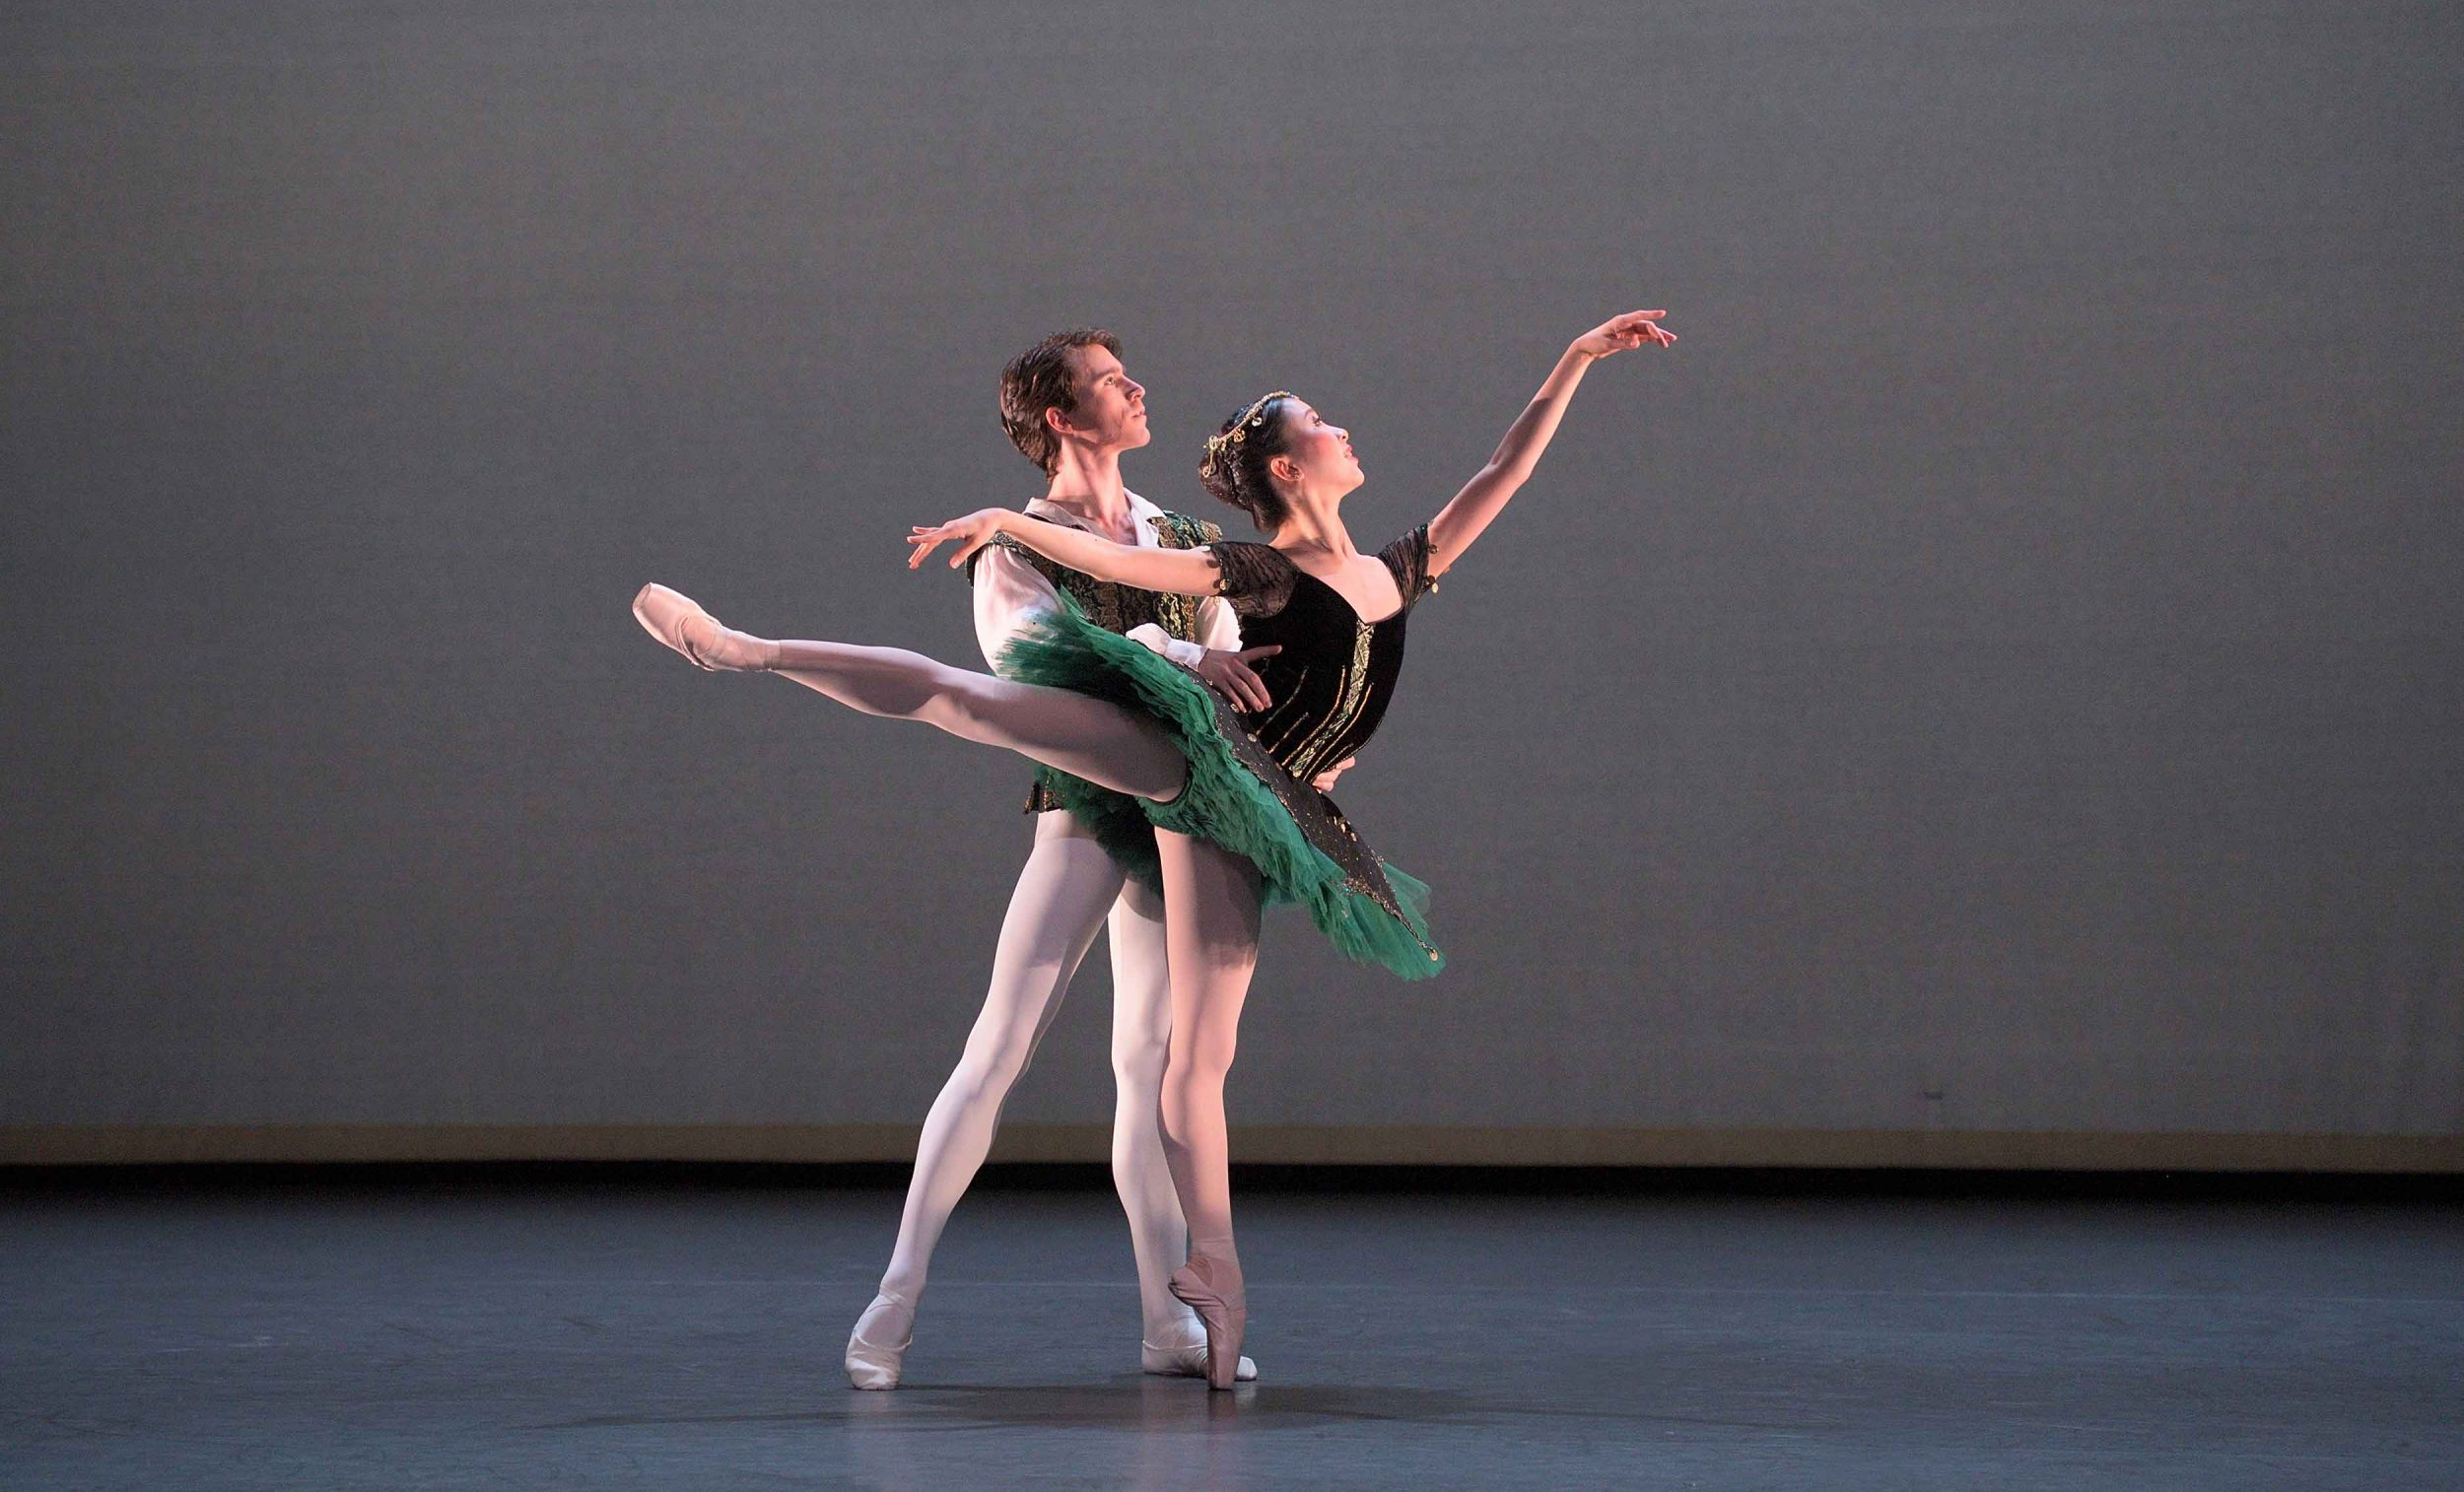 Rina-Kanehara-and-Aitor-Arrieta-performing-the-Esmeralda-pas-de-deux-©-Laurent-Liotardo-(2)